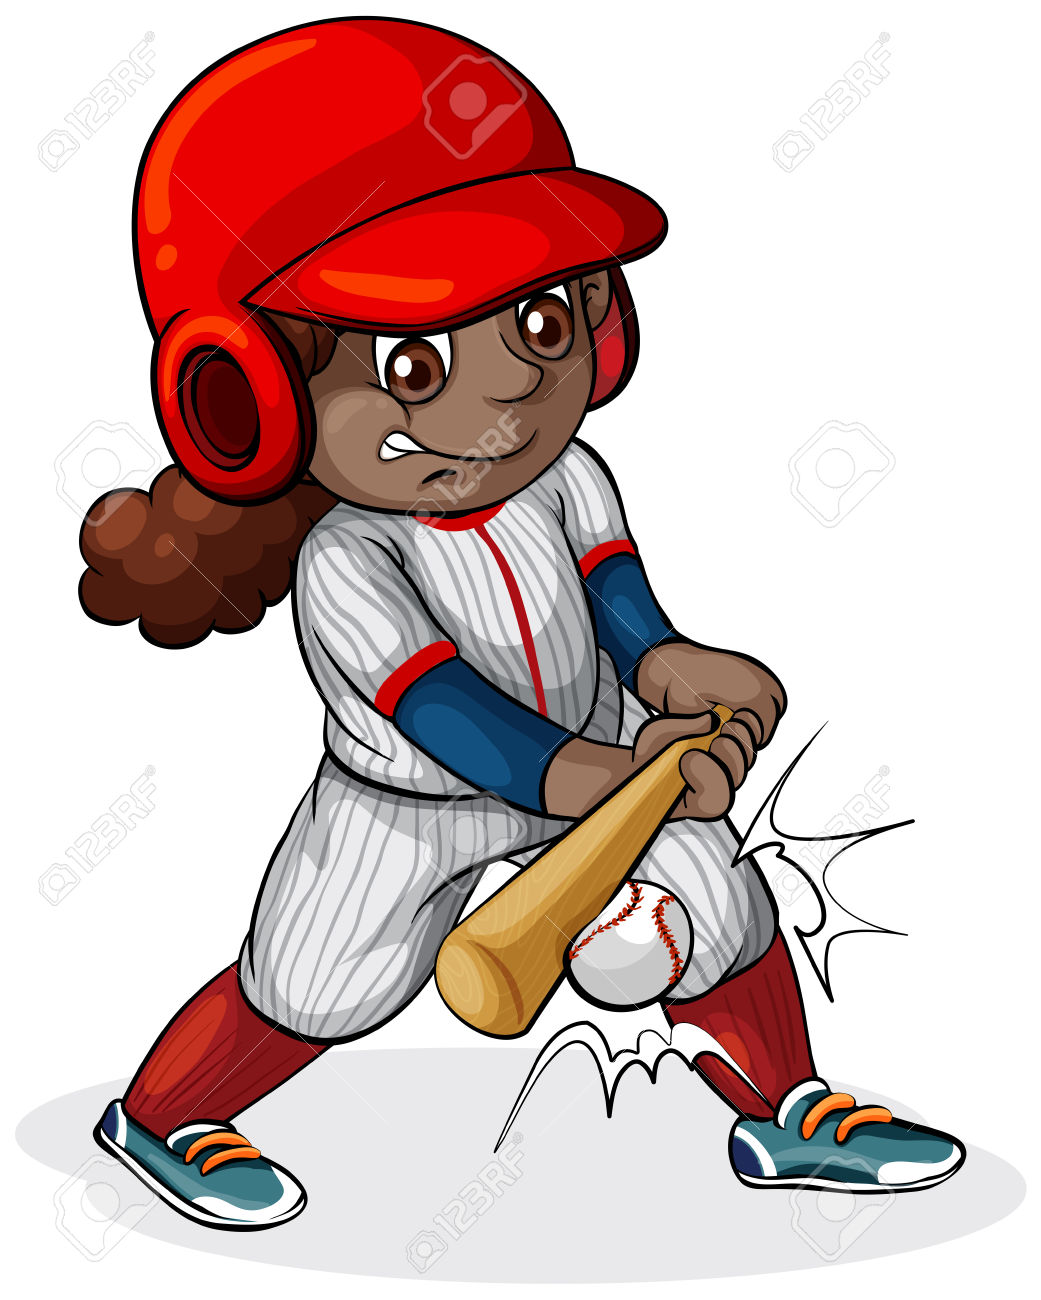 Girl baseball cartoon